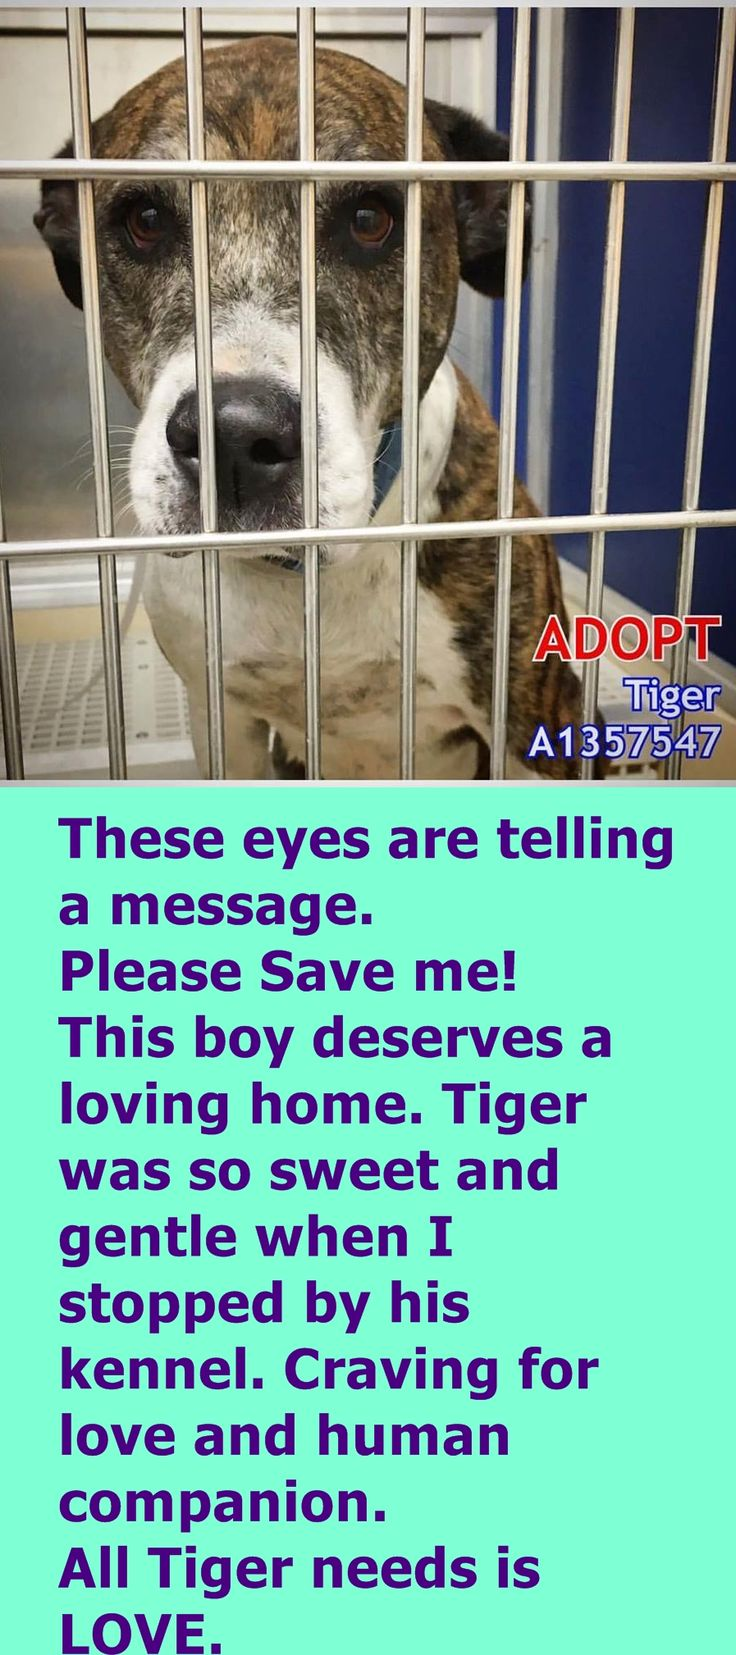 Tiger #A1357547 is about 7-years old, terrier mix box, neutered. He has been at the shelter since Aug 11 2016. Stray. located at Miami Dade https://www.facebook.com/urgentdogsofmiami/photos/a.474760019225073.115405.191859757515102/1330551330312600/?type=3&theater